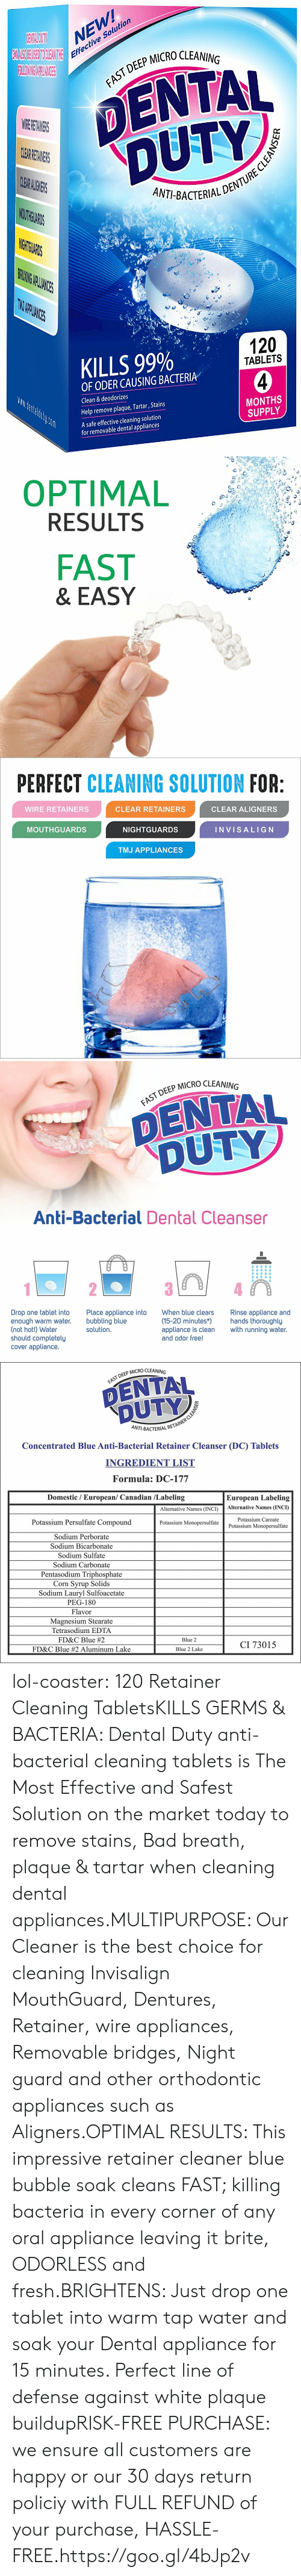 Bad, Fresh, and Lol: NEW  e Solution  Effectiv  P MICRO CLEANING  DENTAL  DUTY  AST DEEP  CL  ANT-BACTERIALD  THG  PLIANIES  KILLS 99%  120  TABLETS  OF ODER CAUSING BACTERIA  Clean & deodorizes  Help remove plaque, Tartar, Stains  A safe effective cleaning solution  MONTHS  SUPPLY  for removable dental appliances   OPTIMAL  RESULTS  FAST  & EASY   PERFECT CLEANING SOLUTION FOR  WIRE RETAINERS  CLEAR RETAINERS  CLEAR ALIGNERS  MOUTHGUARDS  NIGHTGUARDS  INVISALIG N  TMJ APPLIANCES   DEEP MICRO CLEANING  DENTAL  DUTY  Anti-Bacterial Dental Cleanser  Drop one tablet into  enough warm water.  (not hot!) Water  should completely  cover appliance.  Place appliance into  bubbling blue  solution  When blue clears  Rinse appliance and  (15-20 minutes*hands thoroughly  appliance is clean with running water.  and odor free!   P MICRO CLEANING  FAST DEEP  NT-BACTERIAL R  Concentrated Blue Anti-Bacterial Retainer Cleanser (DC) Tablets  INGREDIENT LIST  Formula: DC-177  Domestic / European/ Canadian /Labeling  European Labeling  Alternative Names (INCI)Alternative Names (INCI)  Potassium Persulfate Compound  Sodium Perborate  Sodium Bicarbonate  Sodium Sulfate  Sodium Carbonate  Pentasodium Triphosphate  Corn Svrup Solids  Sodium Lauryl Sulfoacetate  PEG-180  Flavor  Magnesium Stearate  Tetrasodium EDTA  FD&C Blue #2  FD&C Blue #2 Aluminum Lake  Potassium Caroate  Potassium Monopersulfate  Potassium Monopersulfate  Blue 2  CI 73015  Blue 2 Lake lol-coaster:    120 Retainer Cleaning TabletsKILLS GERMS & BACTERIA: Dental Duty anti-bacterial cleaning tablets is The Most Effective and Safest Solution on the market today to remove stains, Bad breath, plaque & tartar when cleaning dental appliances.MULTIPURPOSE: Our Cleaner is the best choice for cleaning Invisalign MouthGuard, Dentures, Retainer, wire appliances, Removable bridges, Night guard and other orthodontic appliances such as Aligners.OPTIMAL RESULTS: This impressive retainer cleaner blue bubble soak cleans FAST; killing bacteria in every corner of any oral appliance leaving it brite, ODORLESS and fresh.BRIGHTENS: Just drop one tablet into warm tap water and soak your Dental appliance for 15 minutes. Perfect line of defense against white plaque buildupRISK-FREE PURCHASE: we ensure all customers are happy or our 30 days return policiy with FULL REFUND of your purchase, HASSLE-FREE.https://goo.gl/4bJp2v